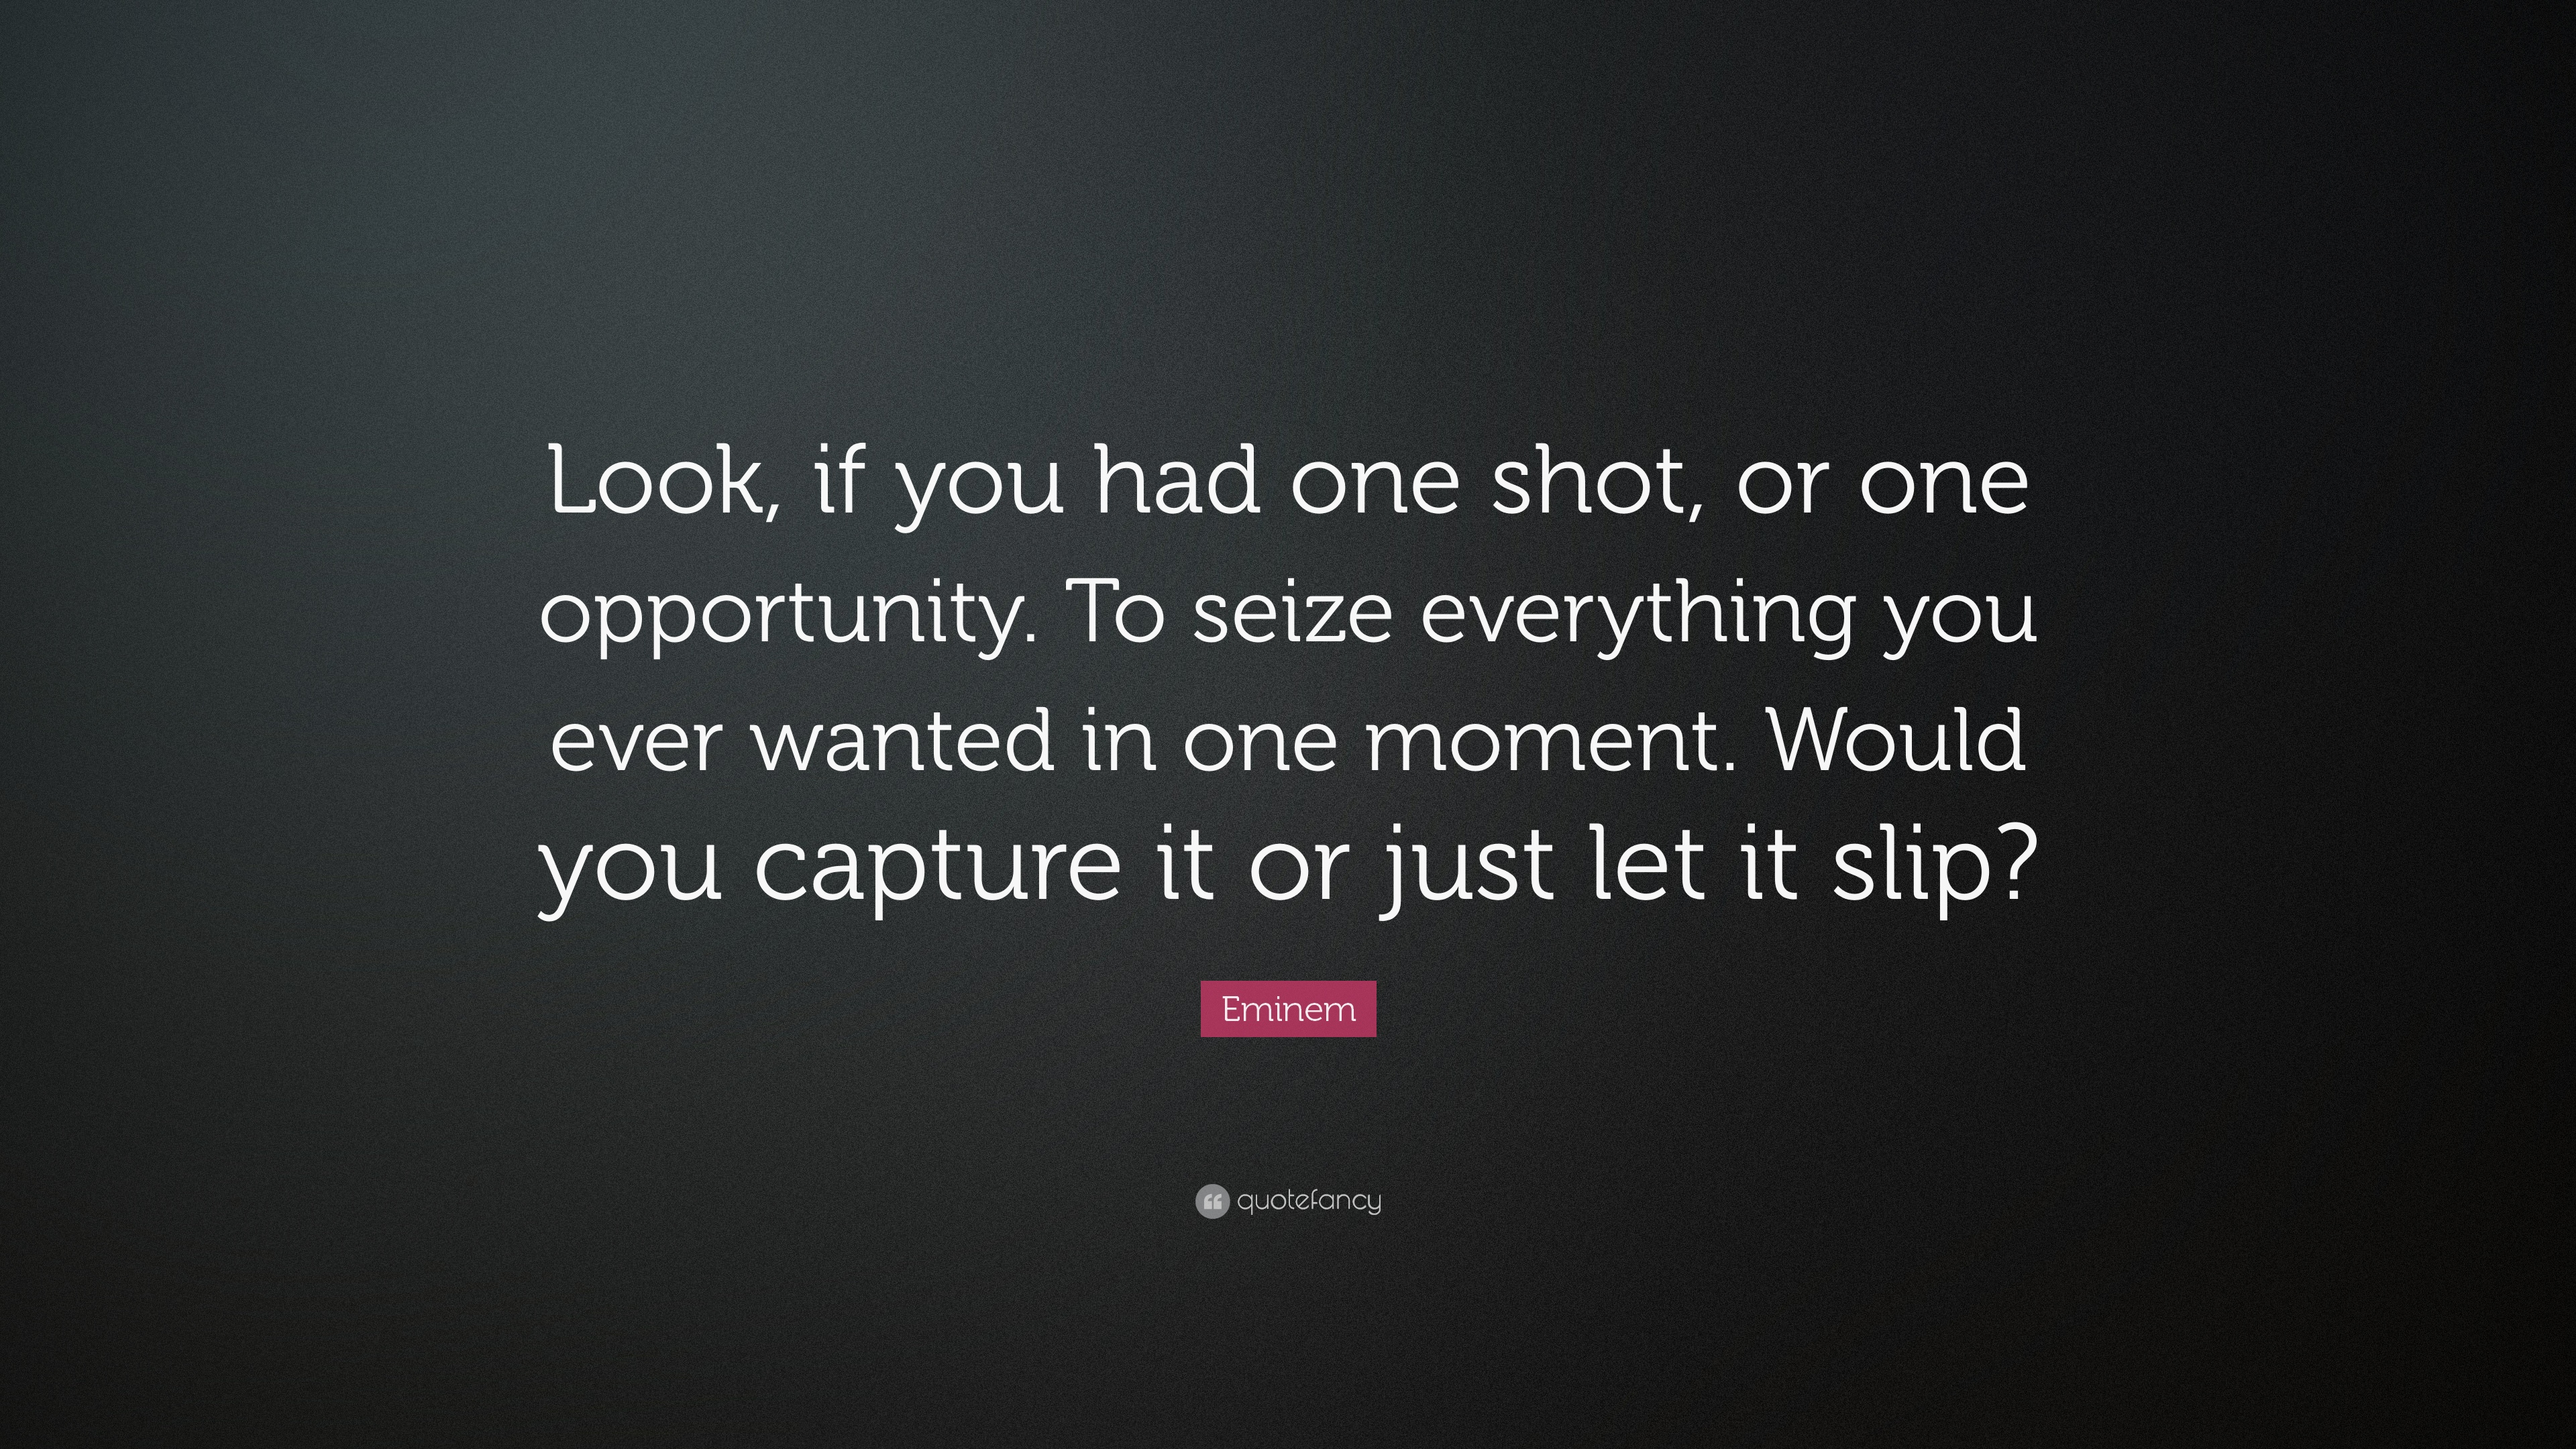 Eminem Quote Look If You Had One Shot Or One Opportunity To Seize Everything You Ever